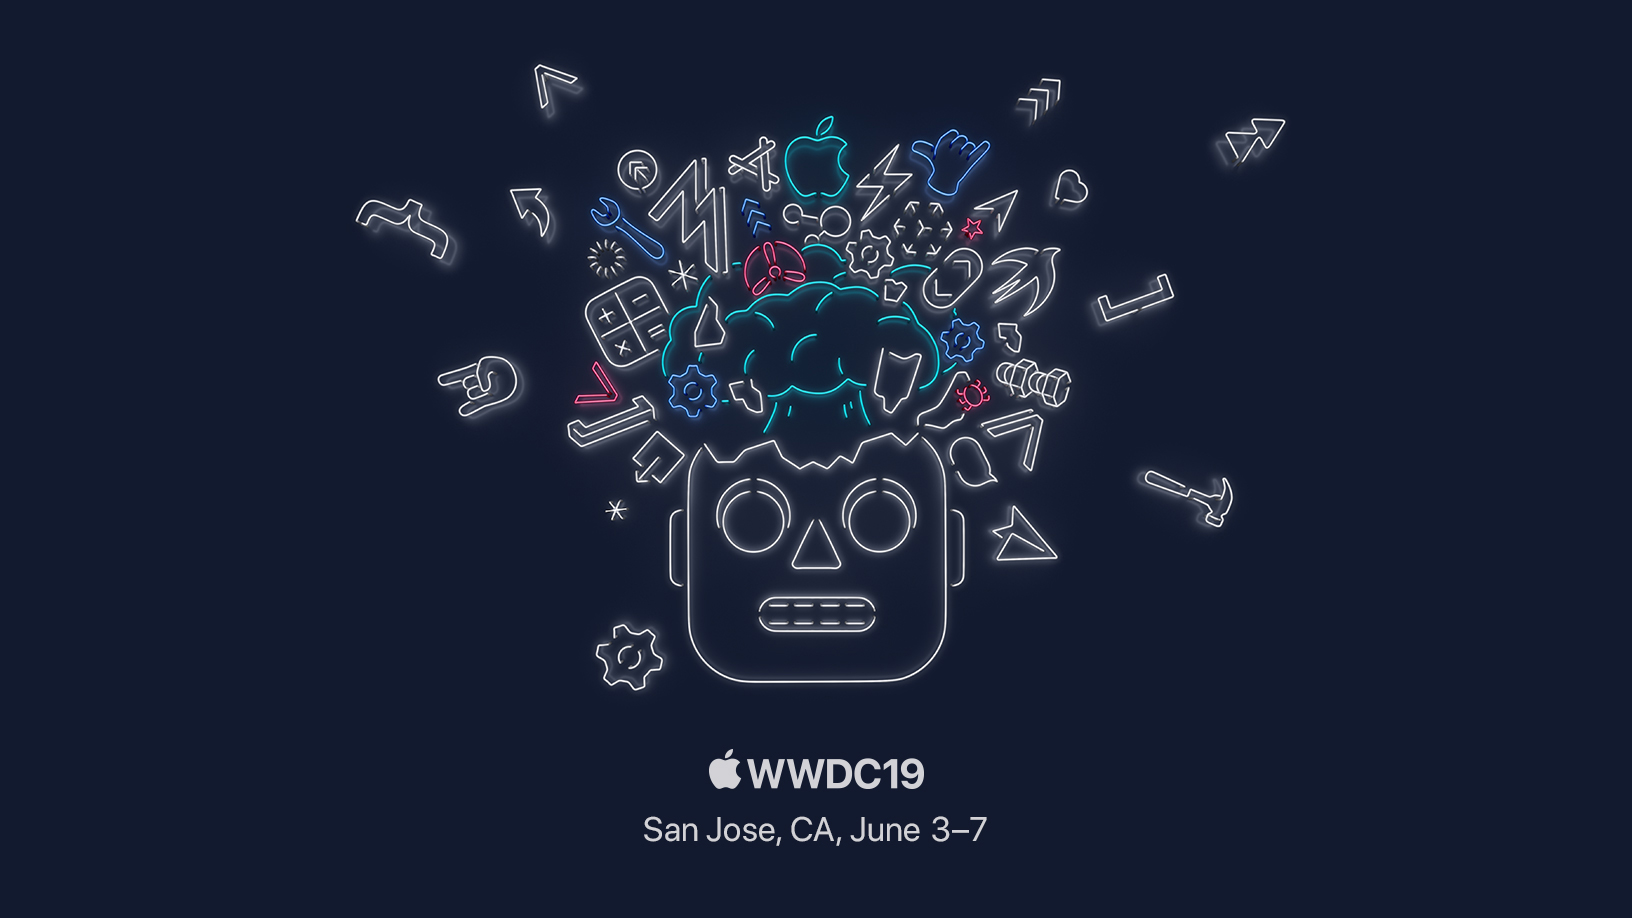 <strong>اپل</strong> <strong>اعلام</strong> <strong>کرد</strong> <strong>که</strong> <strong>رویداد</strong> WWDC 2019 <strong><strong>در</strong></strong> <strong>سوم</strong> <strong>تا</strong> <strong>هفتم</strong> <strong>ژوئن</strong> <strong><strong>در</strong></strong> <strong>سن</strong> <strong>خوزه</strong> <strong>برگزار</strong> <strong>خواهد</strong> <strong>شد</strong>